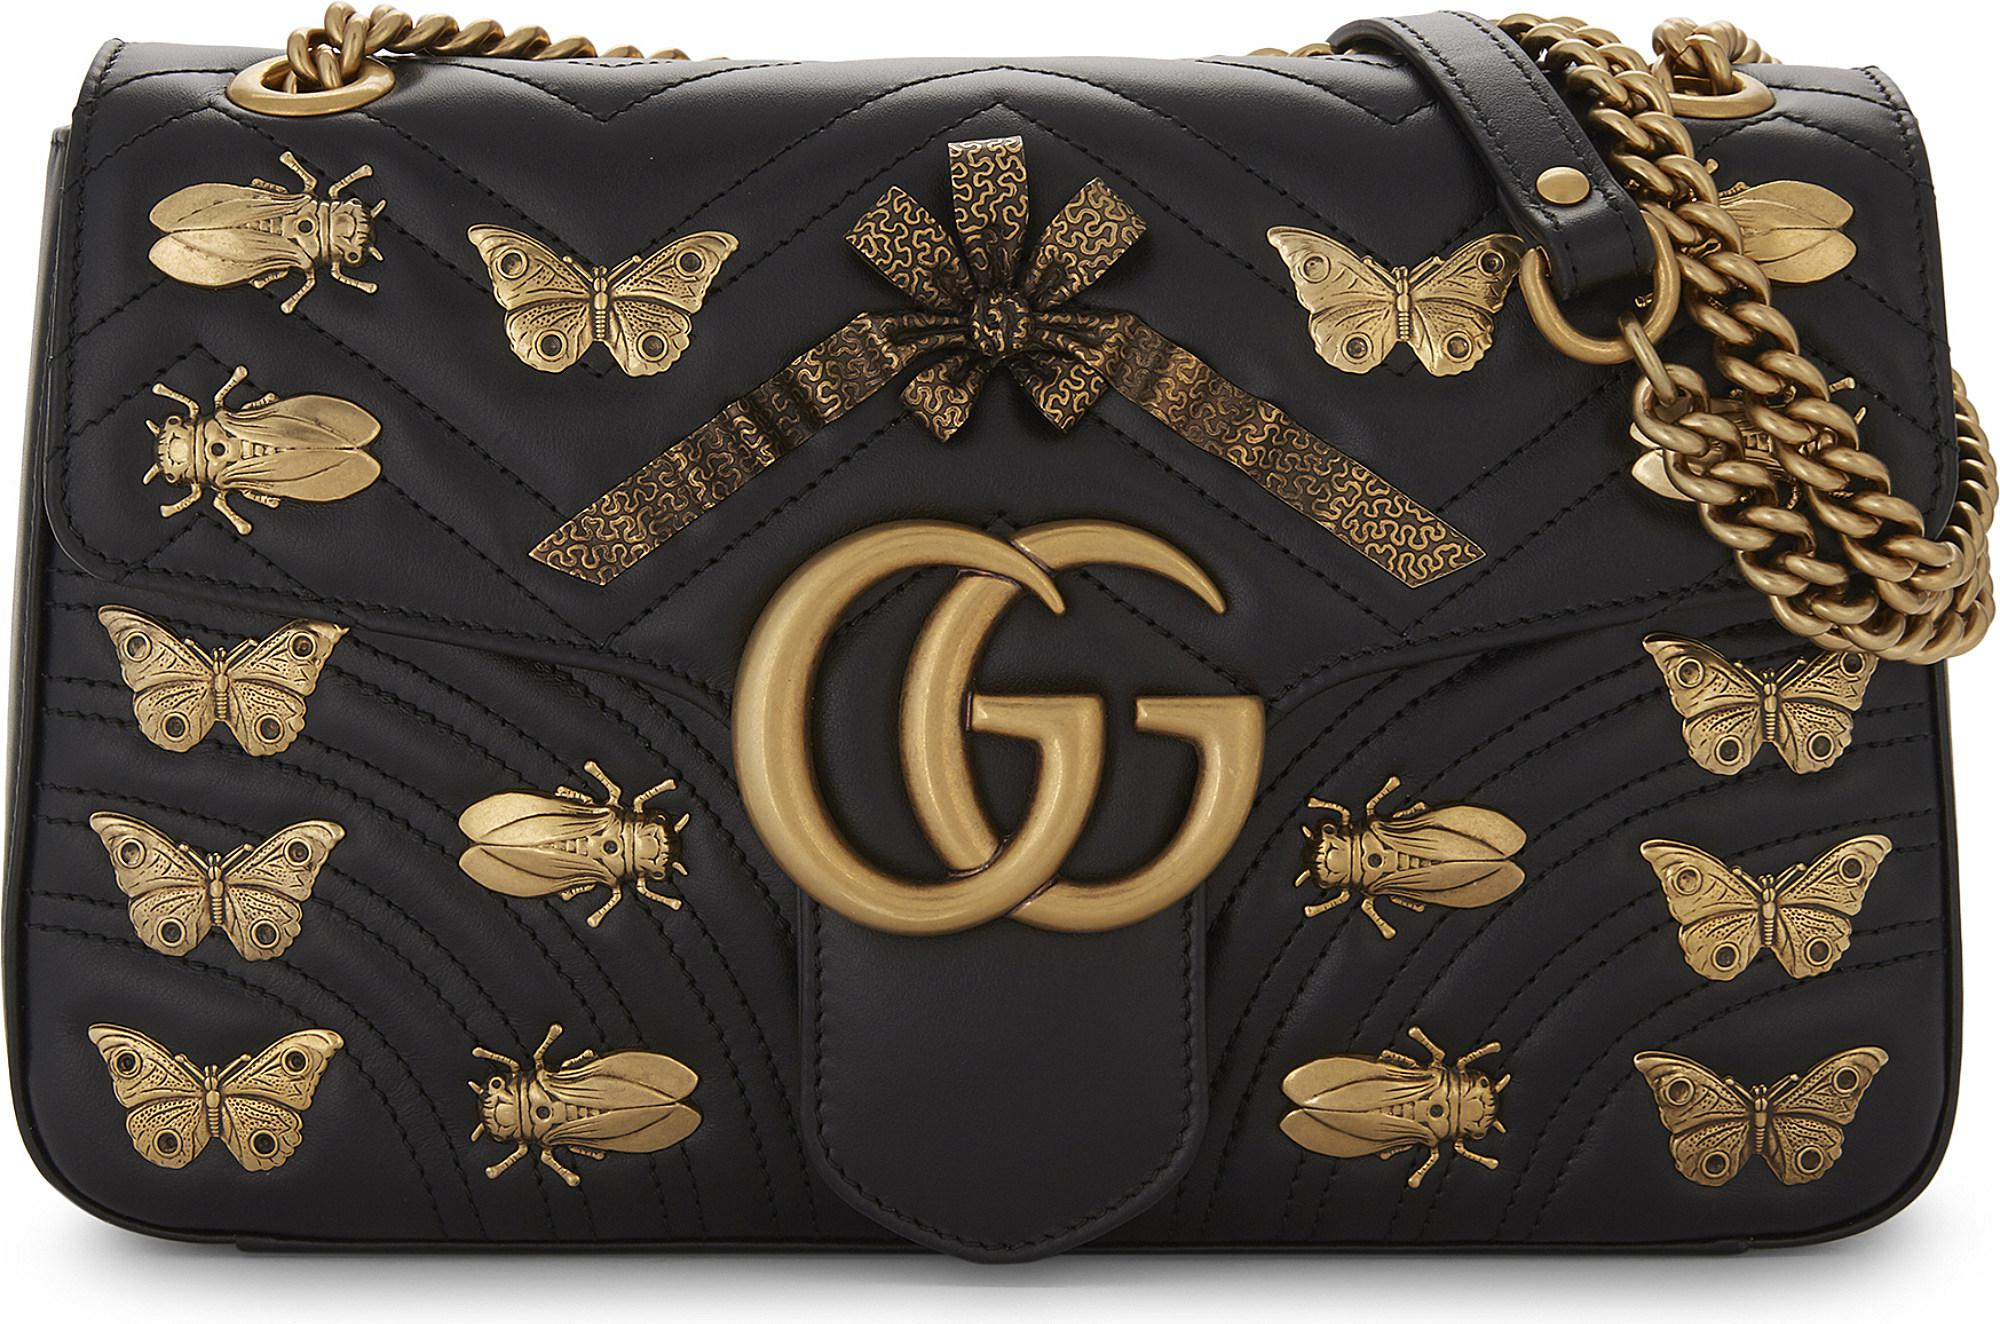 a14995dcea6 Lyst - Gucci Gg Marmont Animal Stud Cross-body Bag in Black